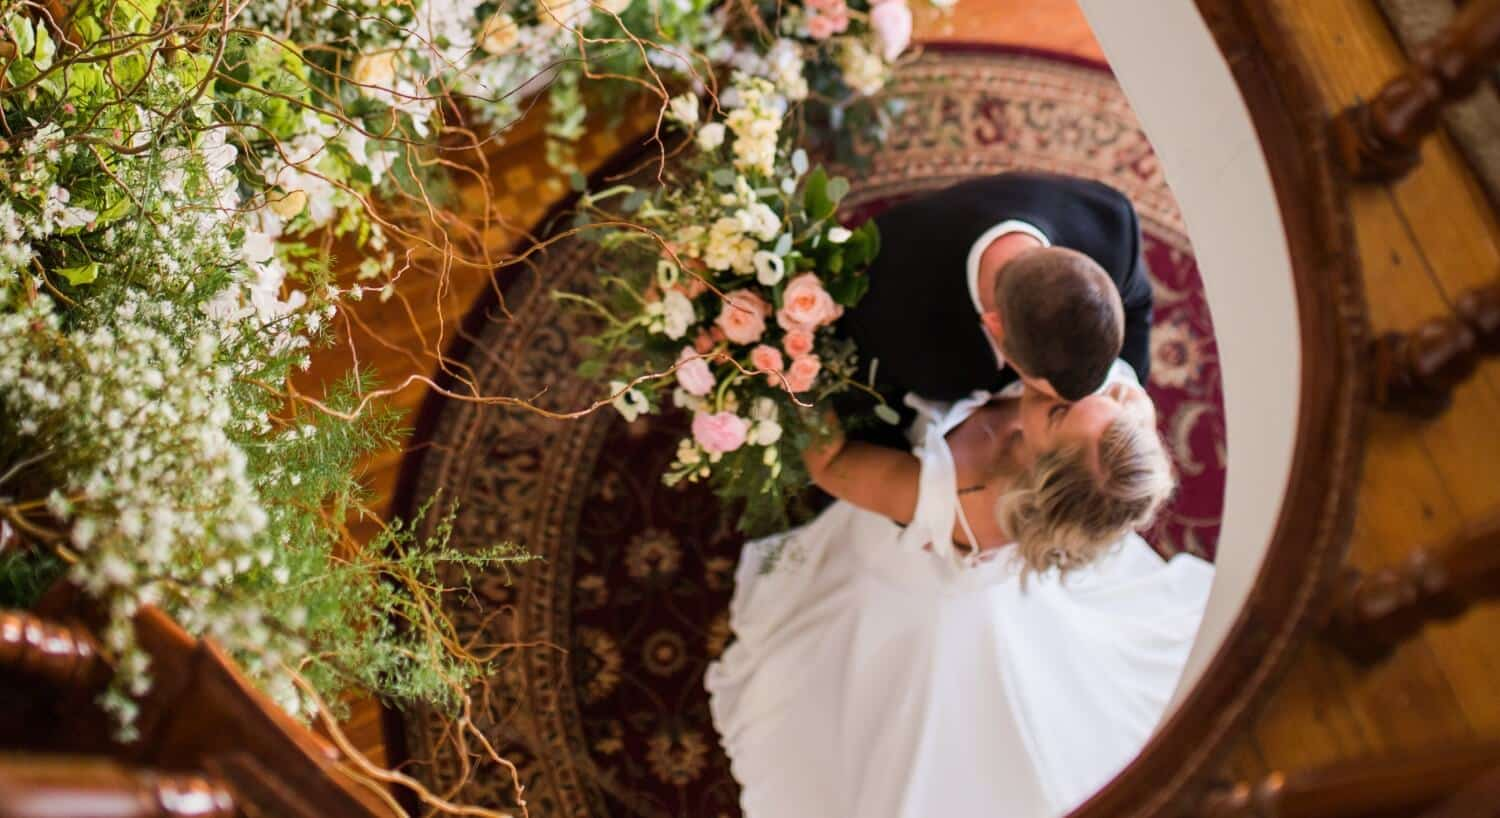 Bride and groom embracing at the bottom of a lavish brown spiral staircase covered in flowers